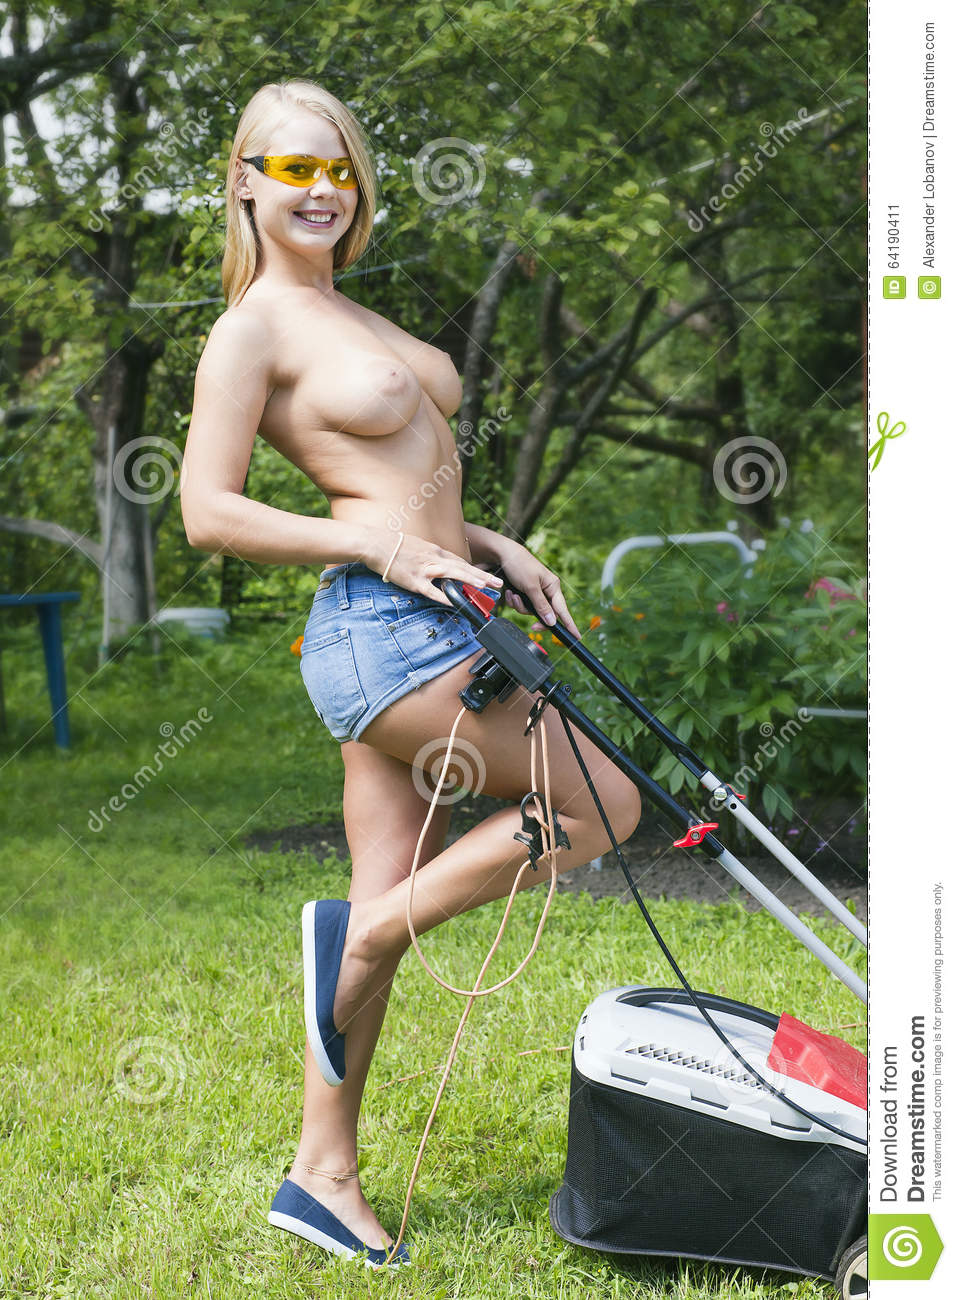 Busty neighbor and lawn boy piece